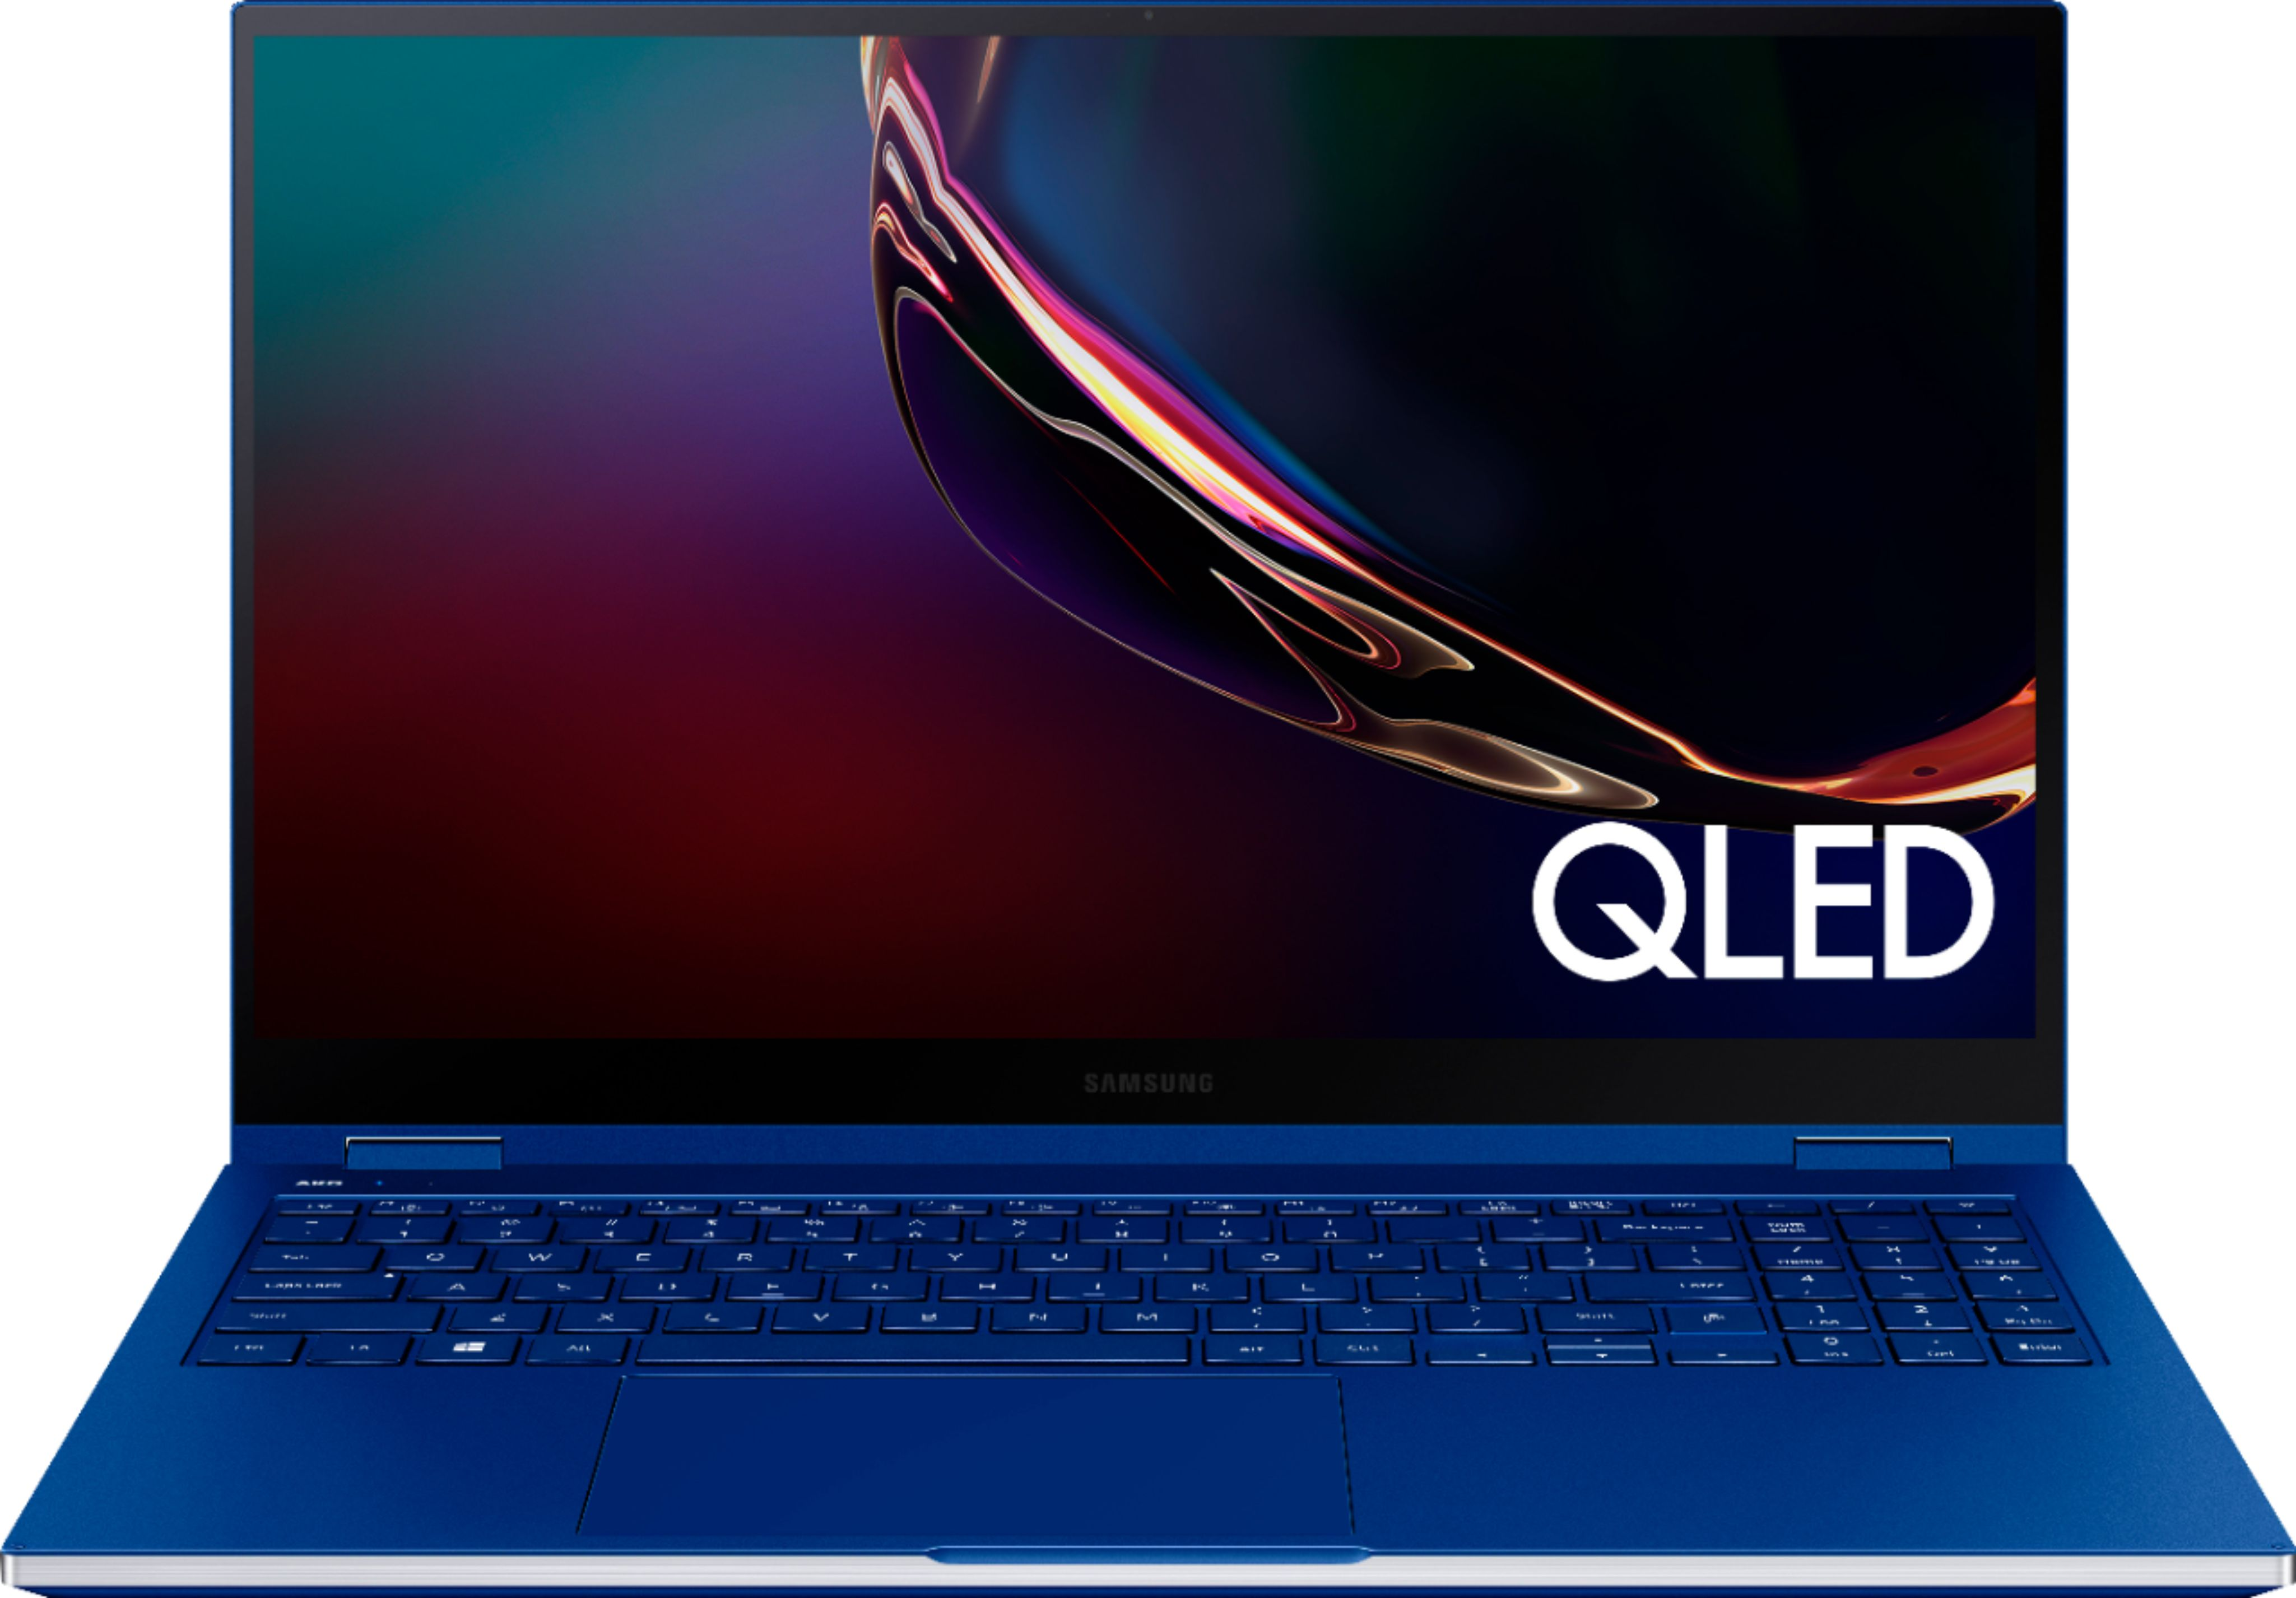 """Angle Zoom. Samsung - Galaxy Book Flex 2-in-1 15.6"""" QLED Touch-Screen Laptop - Intel Core i7 - 12GB Memory - 512GB SSD - Royal Blue."""